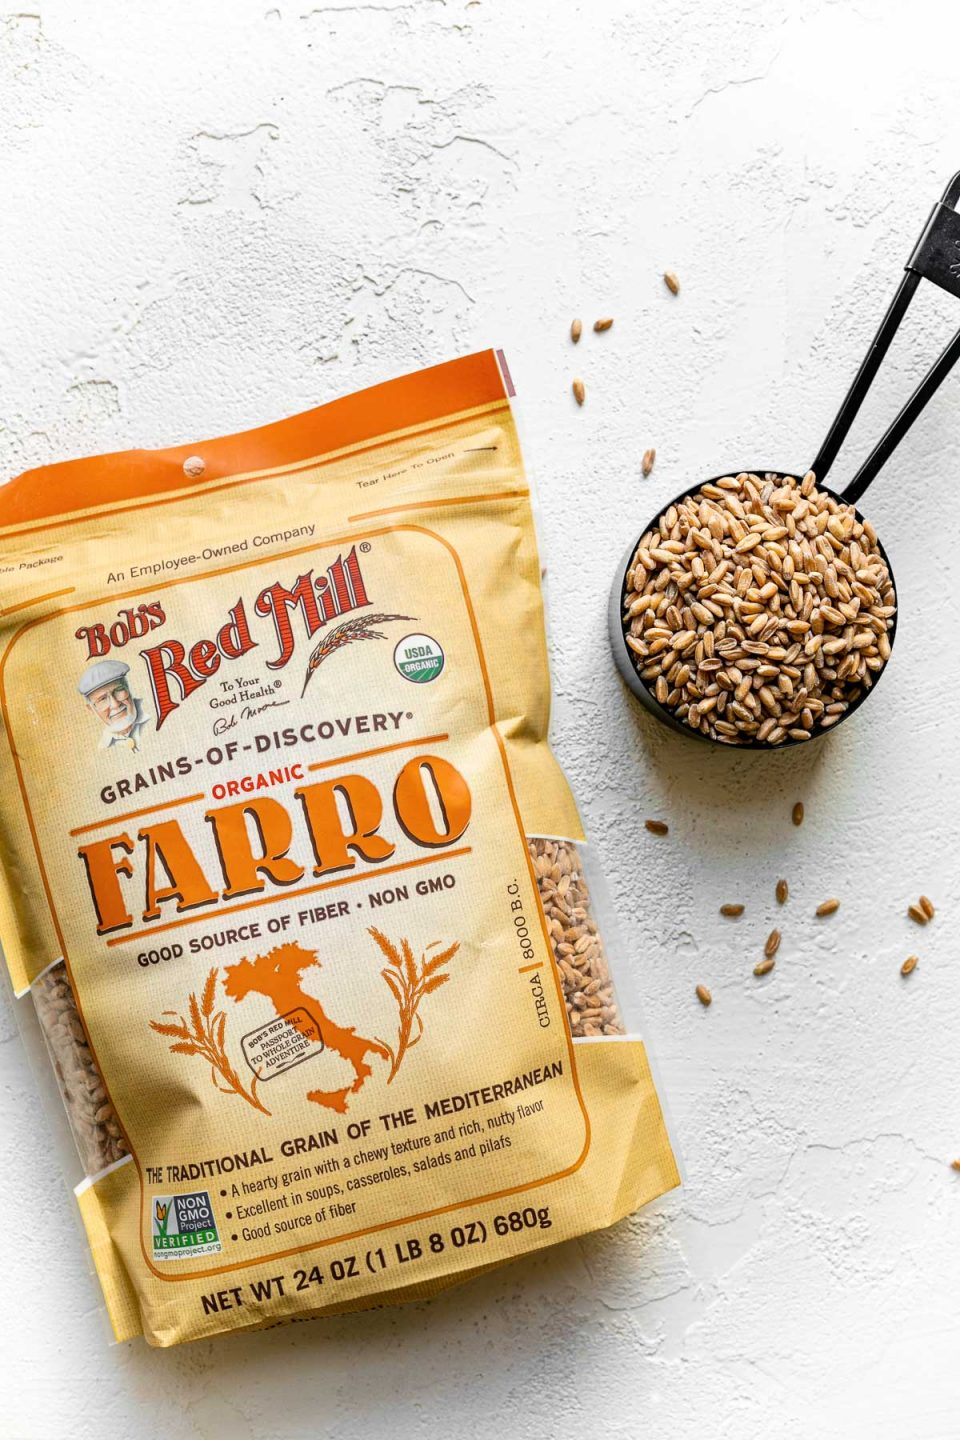 Bag of Bob's Red Mill farro on a white surface next to black measuring cup with farro in it.